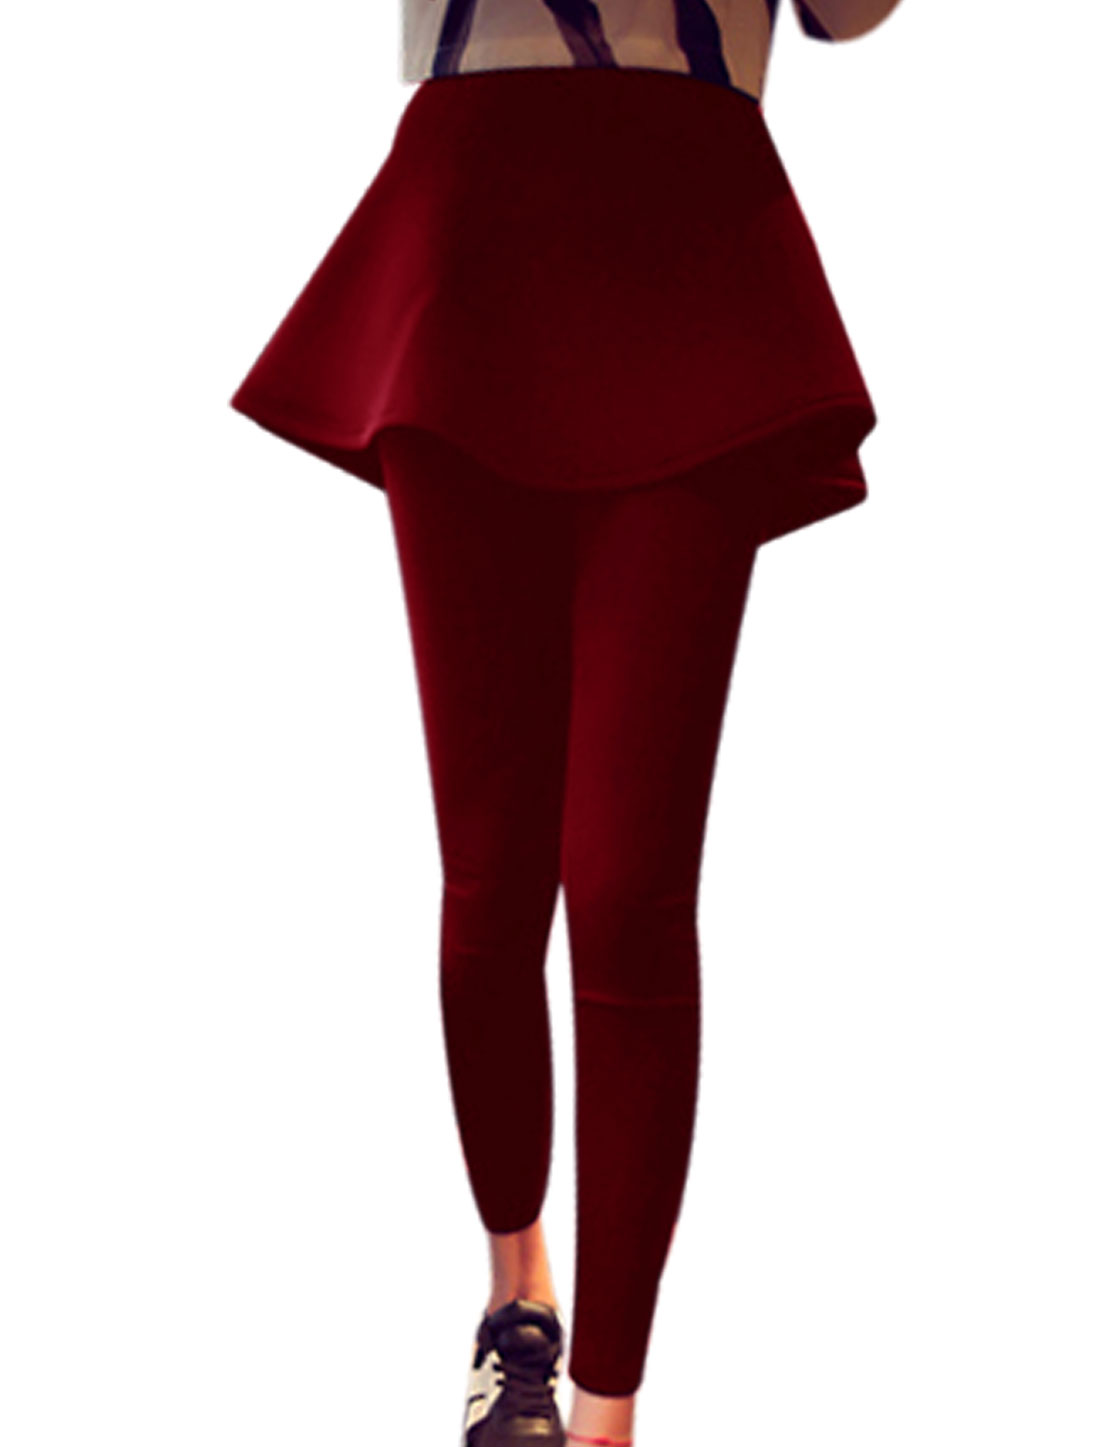 Ladies Layered Design Ruffled Hem Stylish Skirt Leggings Burgundy XS